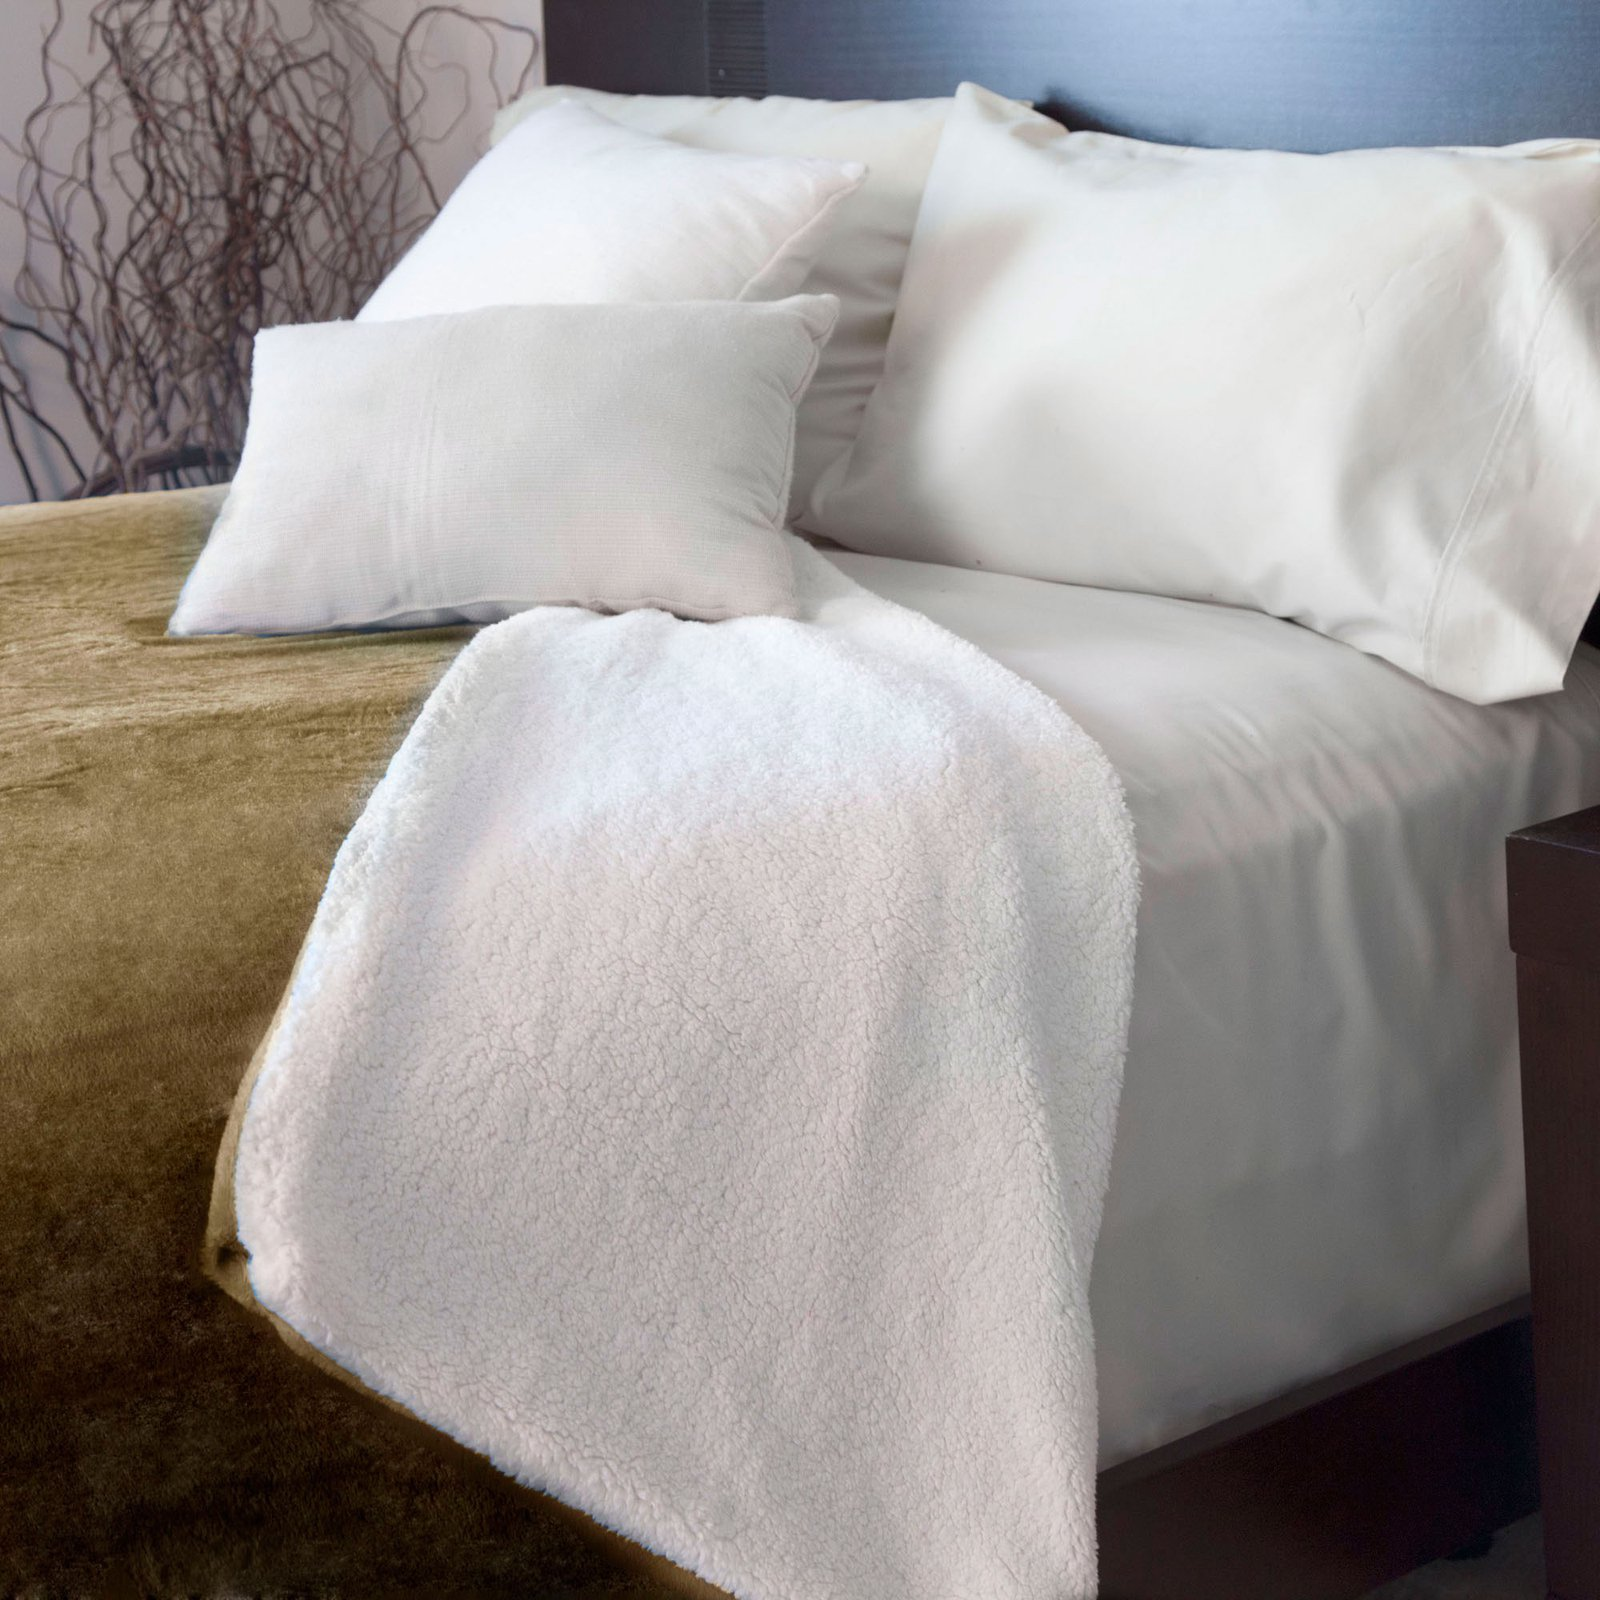 Lavish Home Fleece Blanket with Sherpa Backing